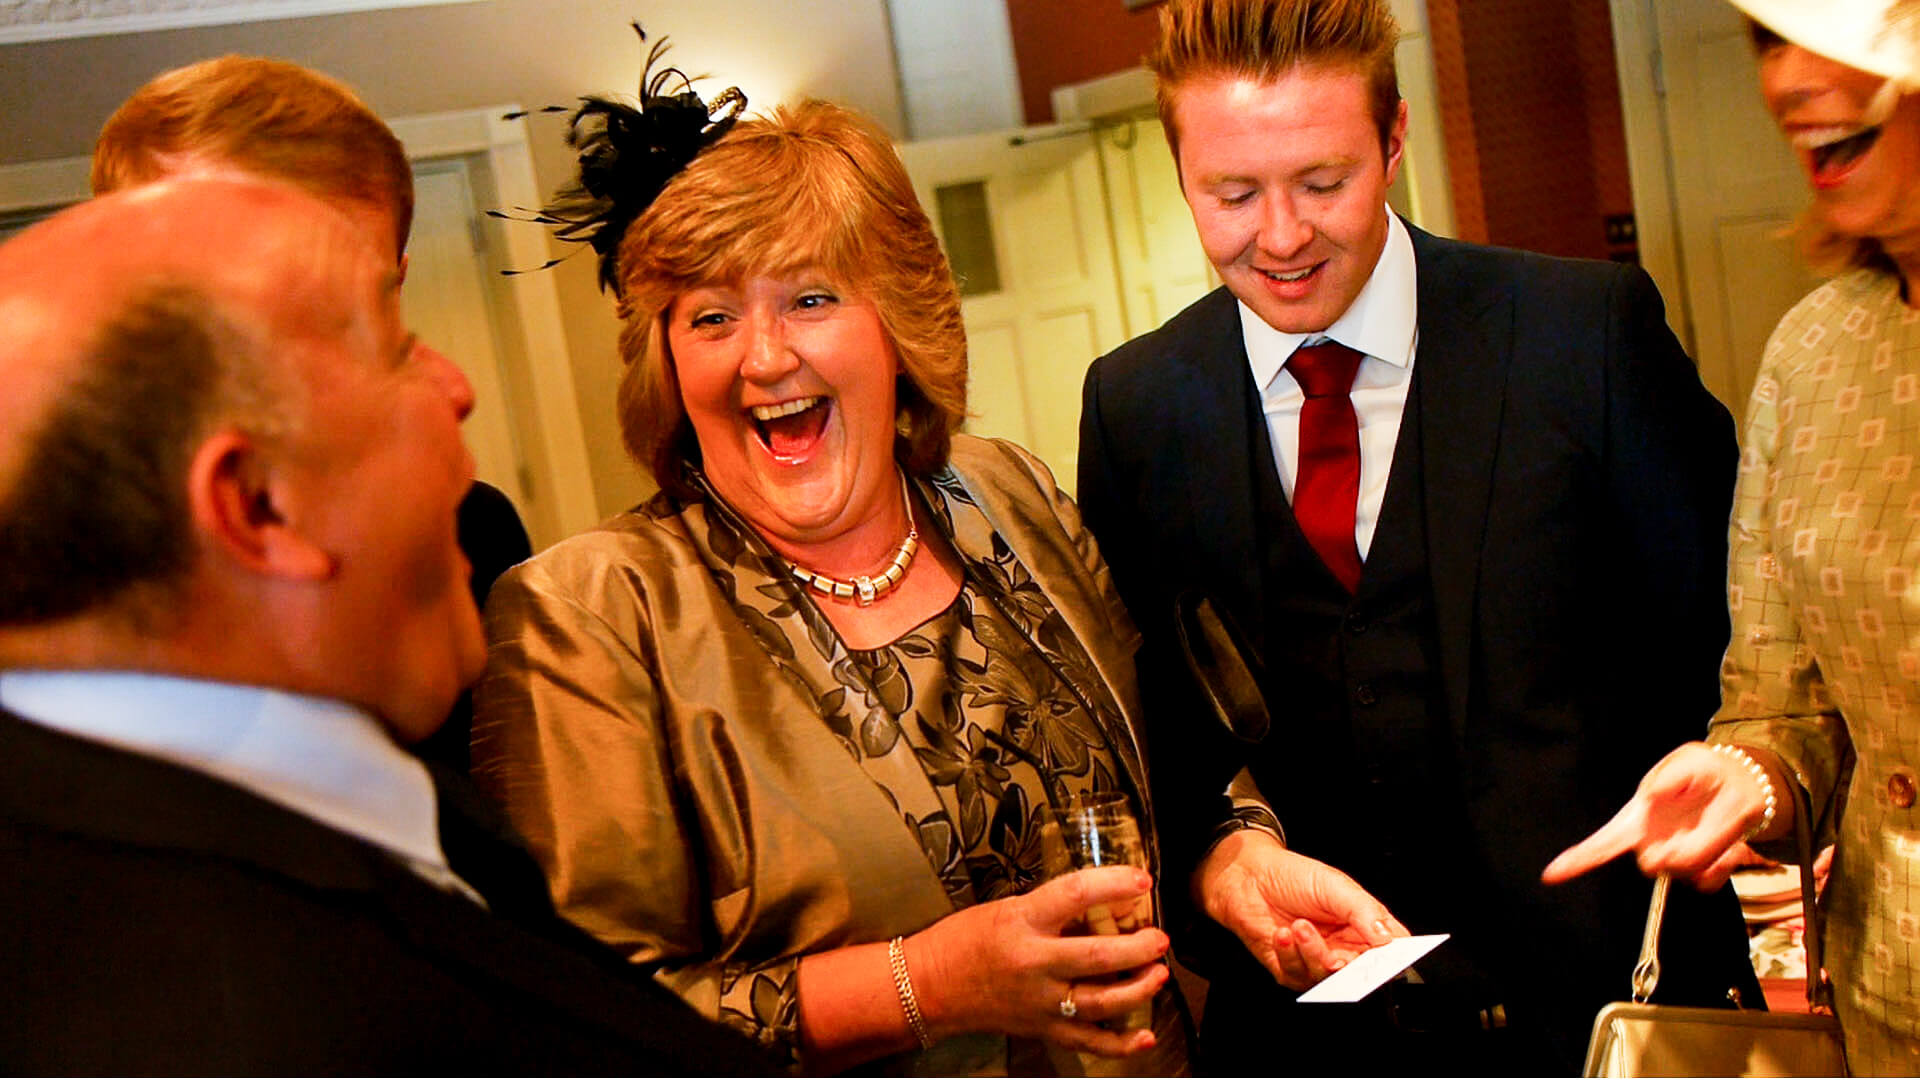 Manchester wedding magician performs magic for group of guests